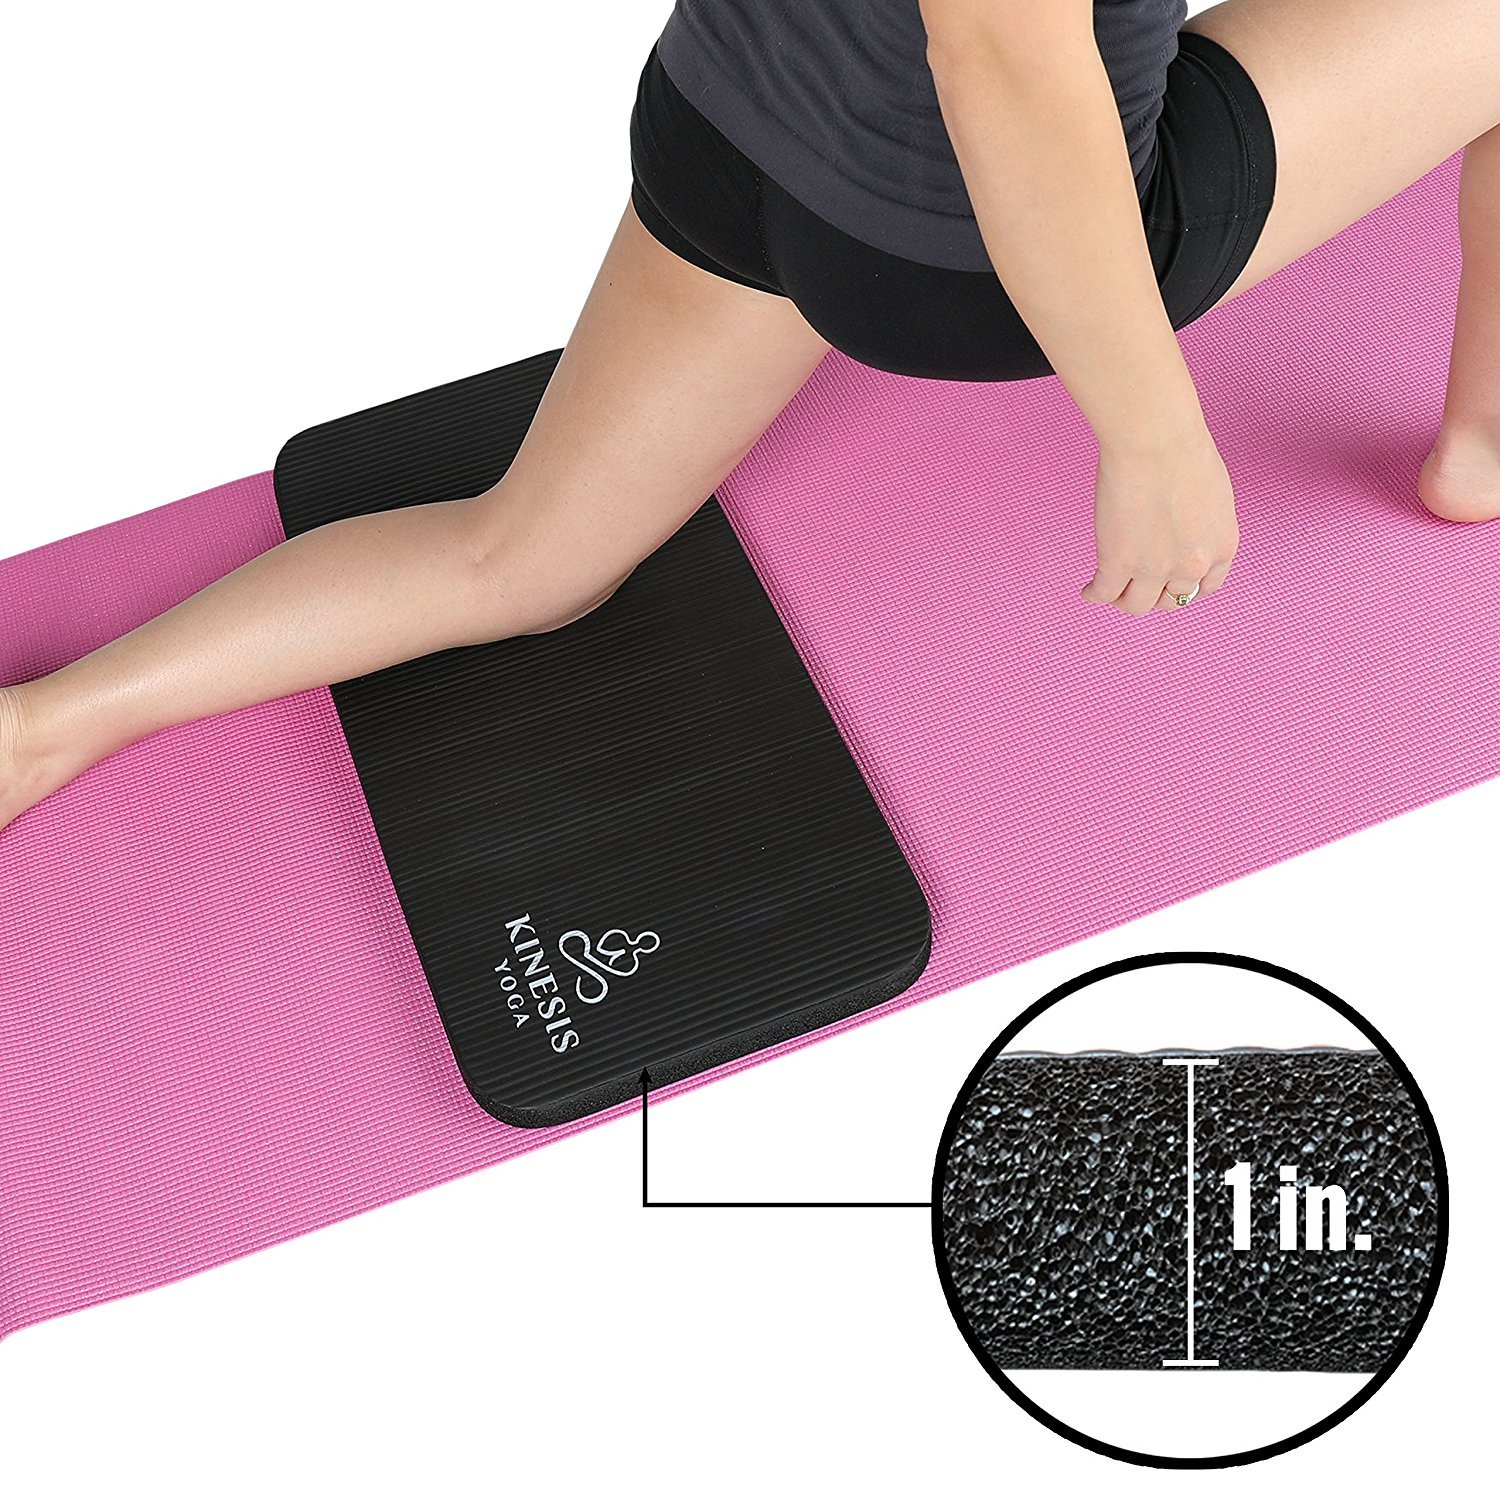 Kinesis Yoga Knee Pad Cushion - Extra Thick 1 inch (25mm) for Pain Free Yoga! Fits Standard Full Sized Yoga Mat and Comes with Velcro for Easy Travel and Storage!